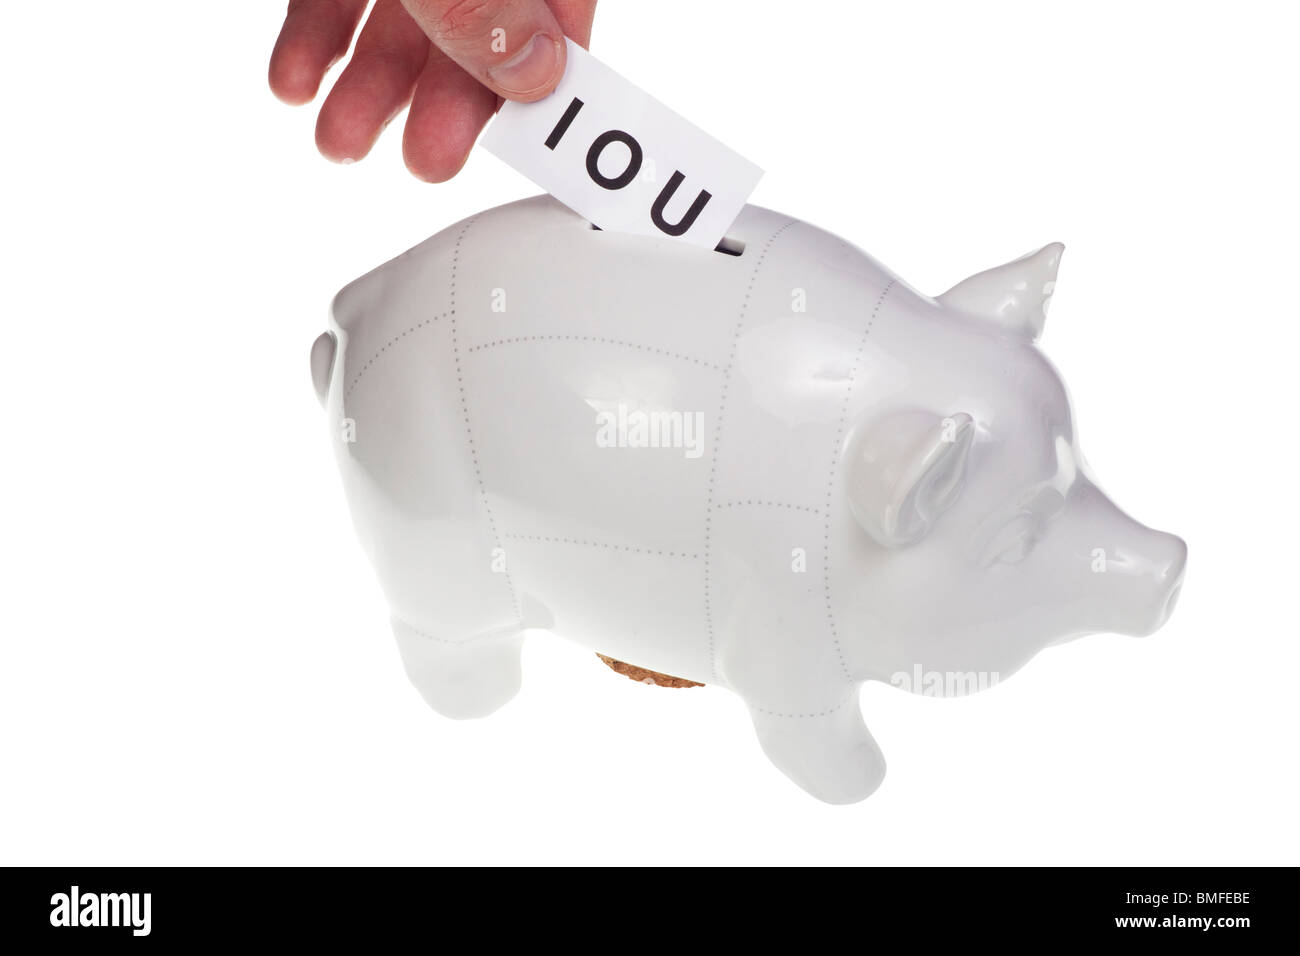 hand dropping IOU note in piggy bank - dept - Stock Image